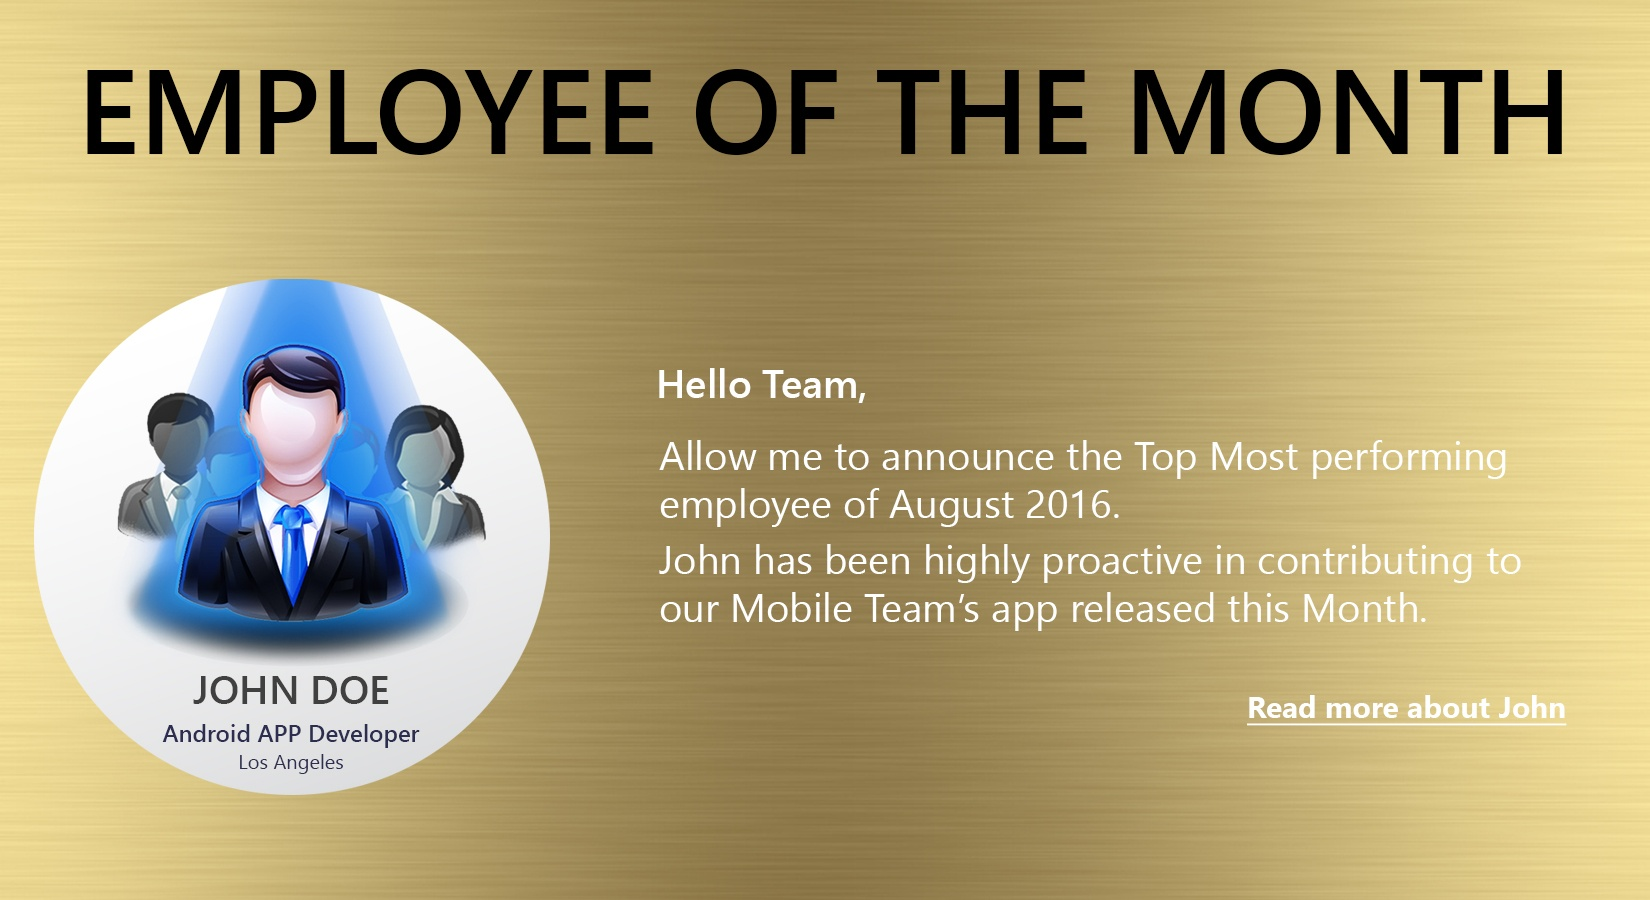 Easy to create Employee Of Month or Employee Spotlight sections